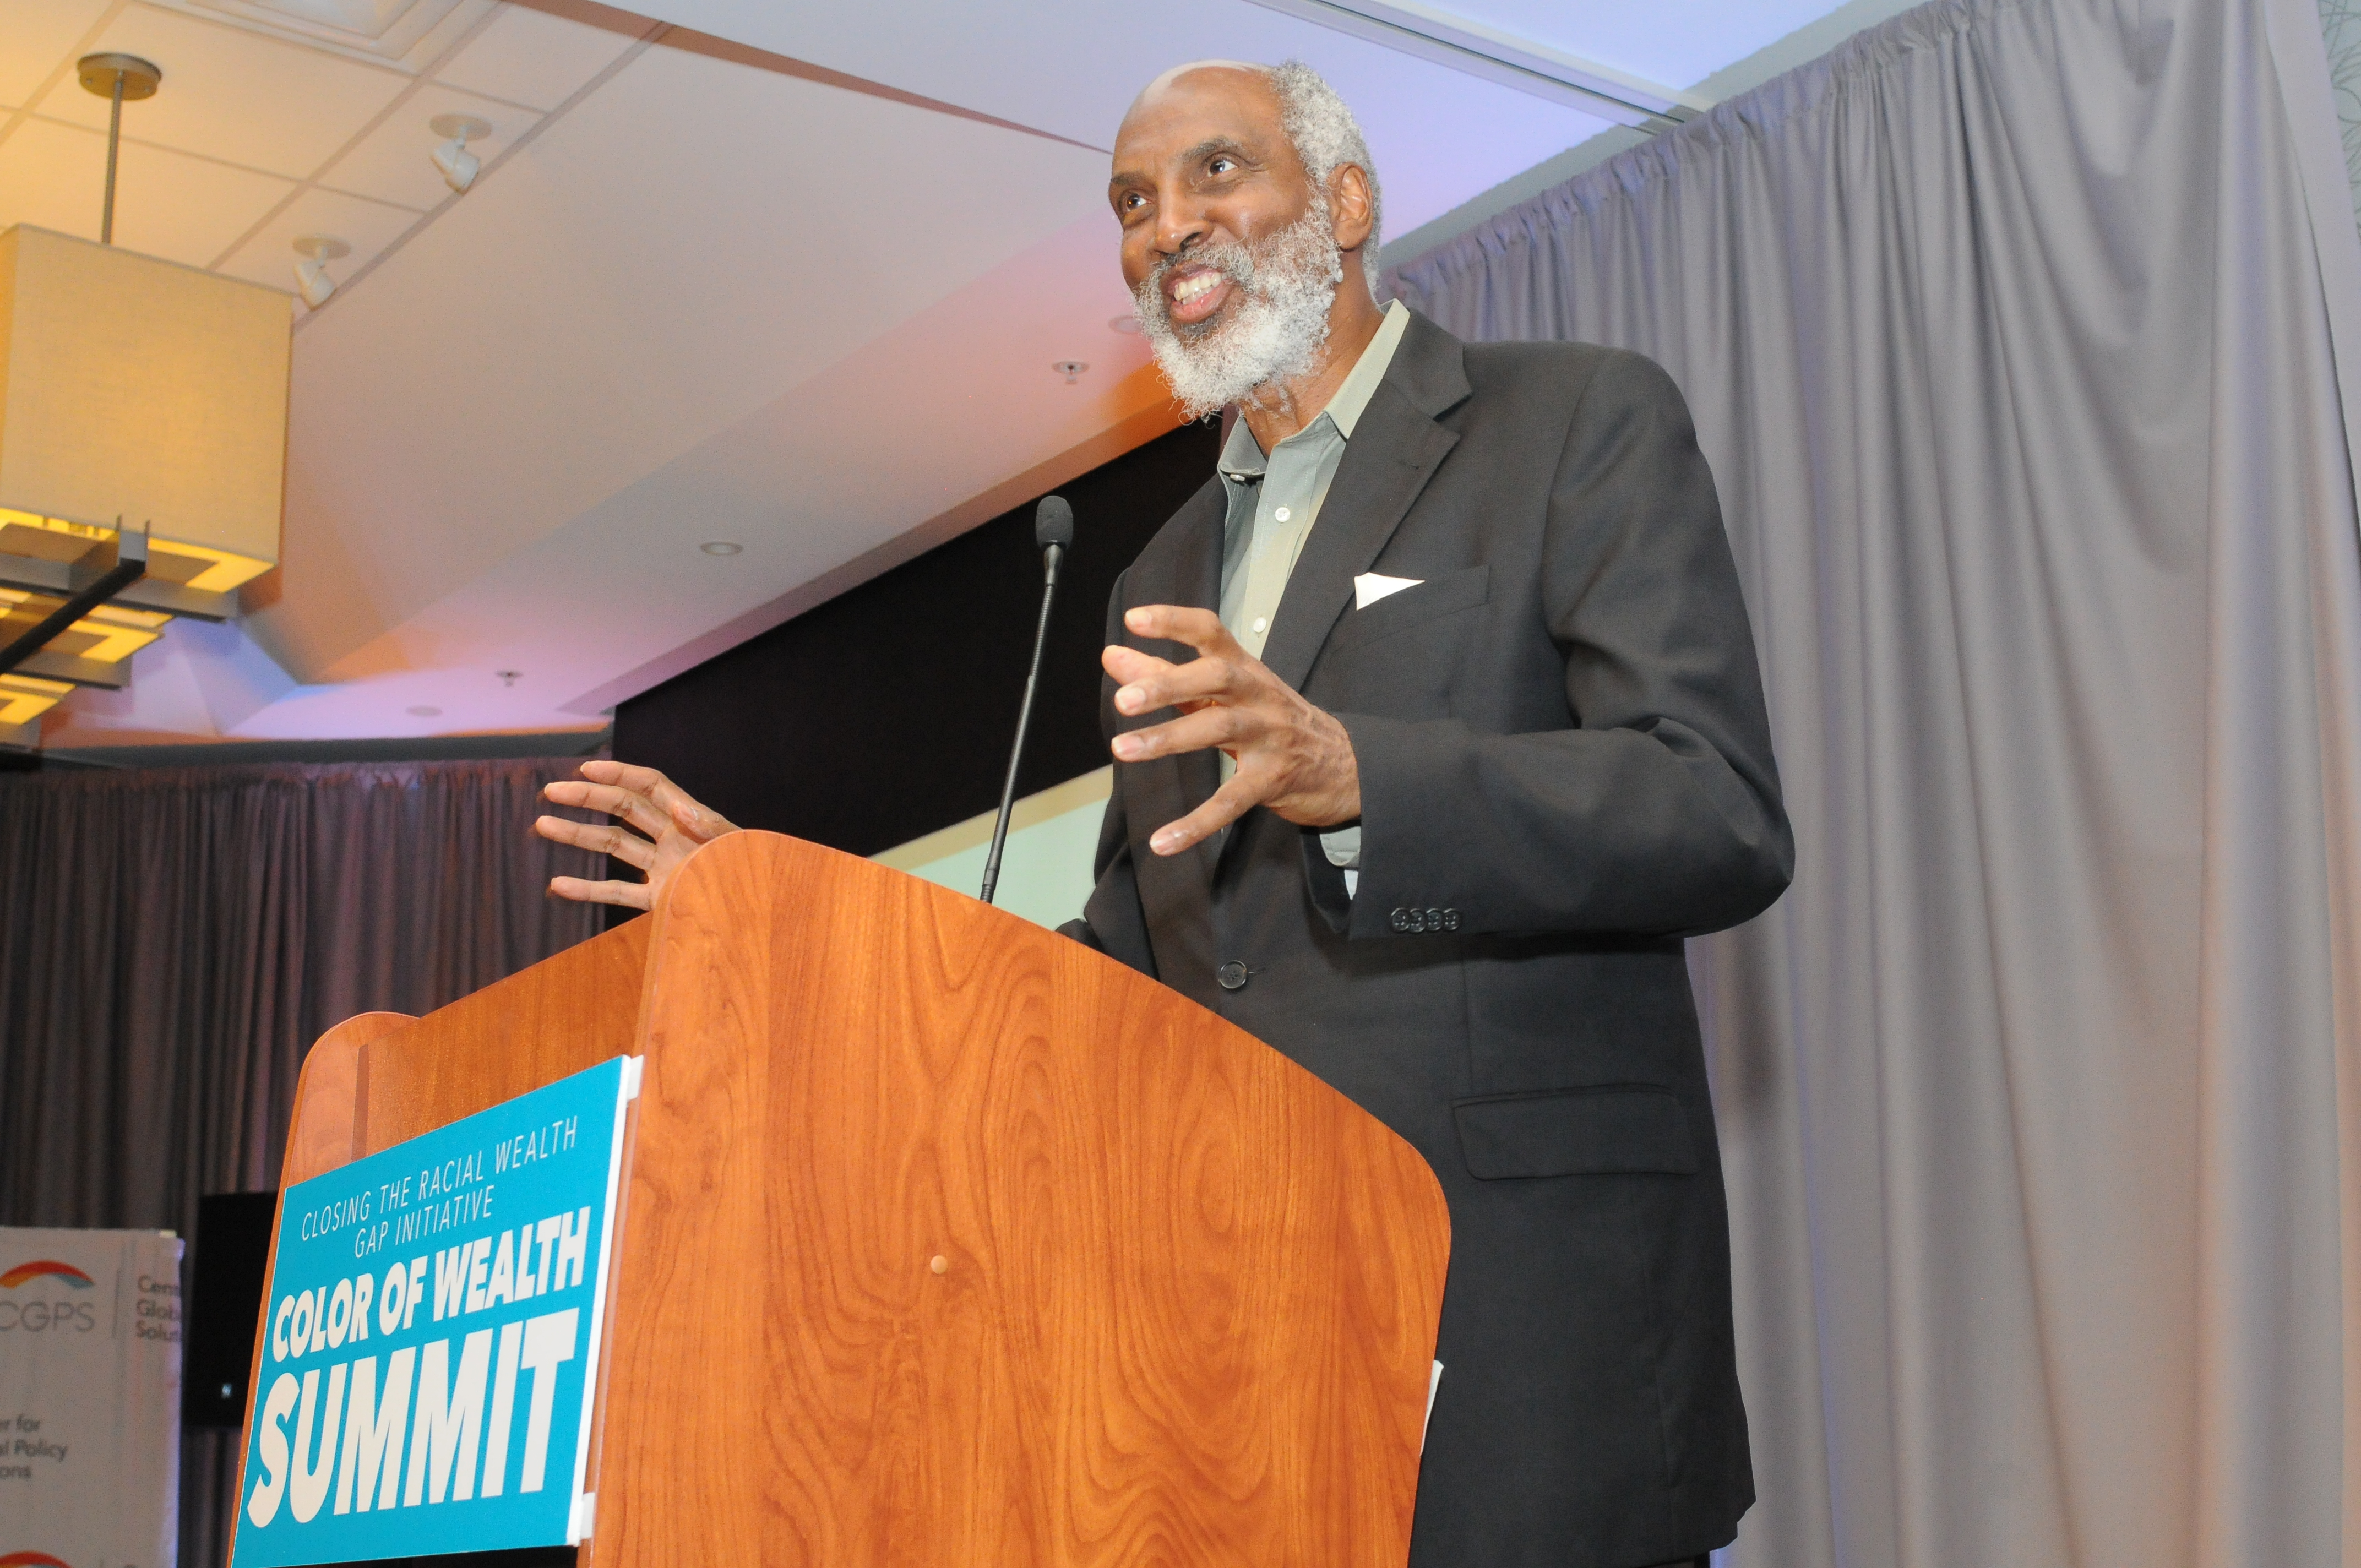 john a. powell at the 2015 Color of Wealth Summit. Photo Credit: Jason Miccolo Johnson